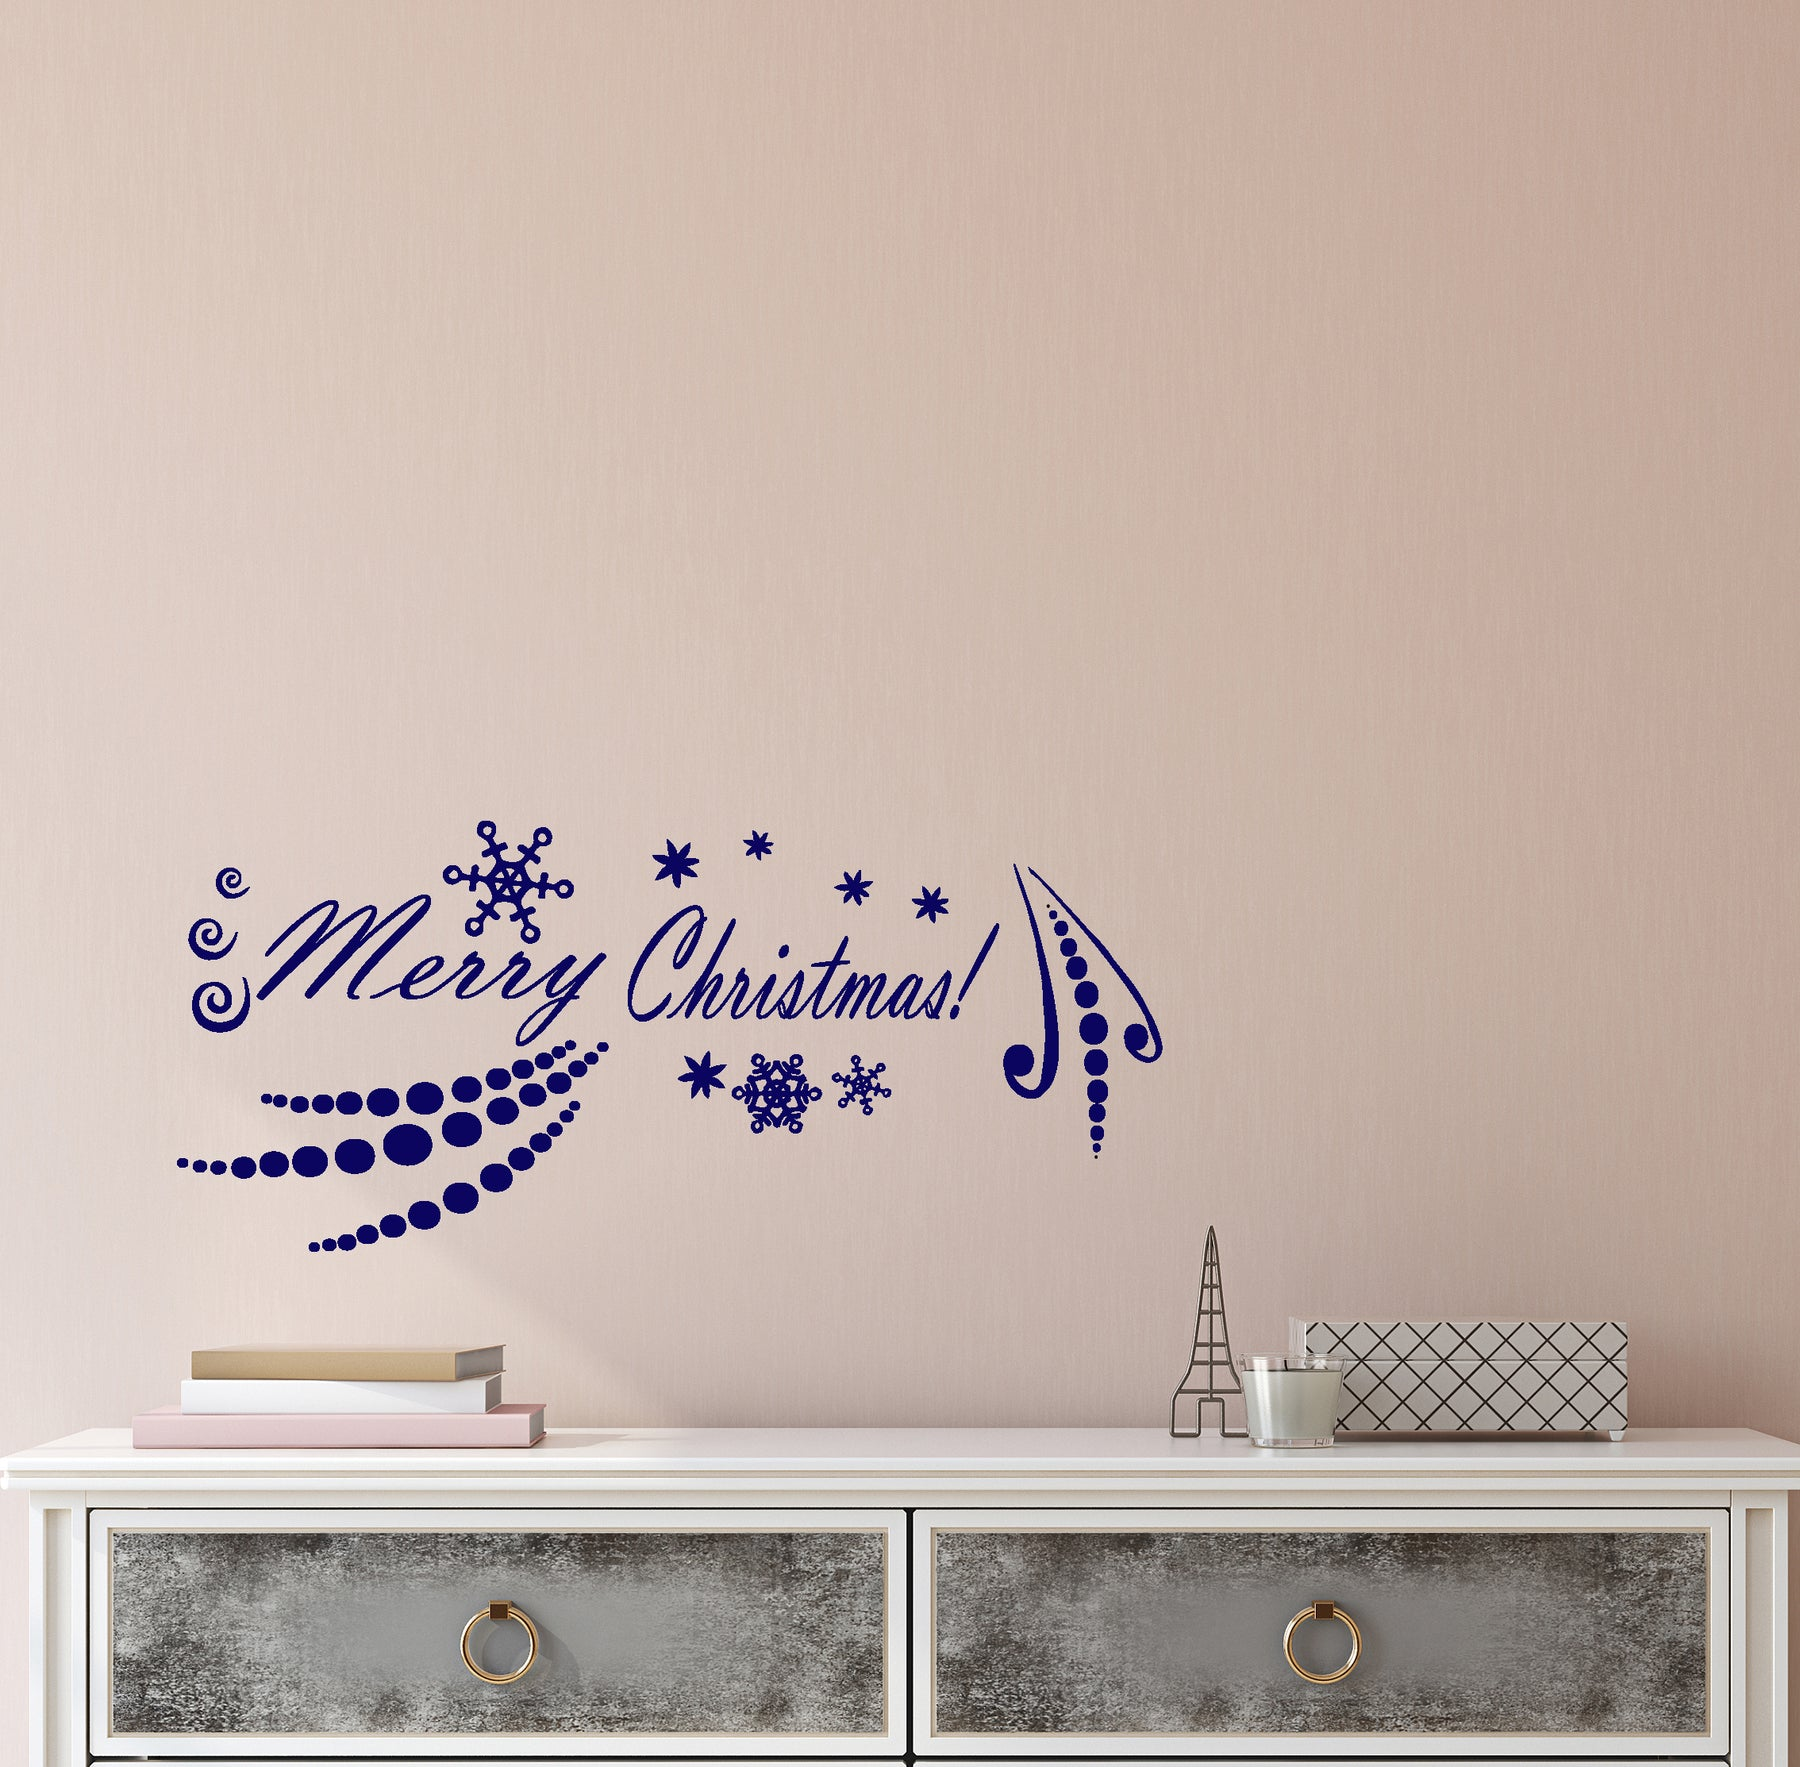 Vinyl Wall Decal Stickers Motivation Merry Christmas New Year Snowflakes Quote Words Inspiring Letters 4165ig (22.5 in x 10 in)